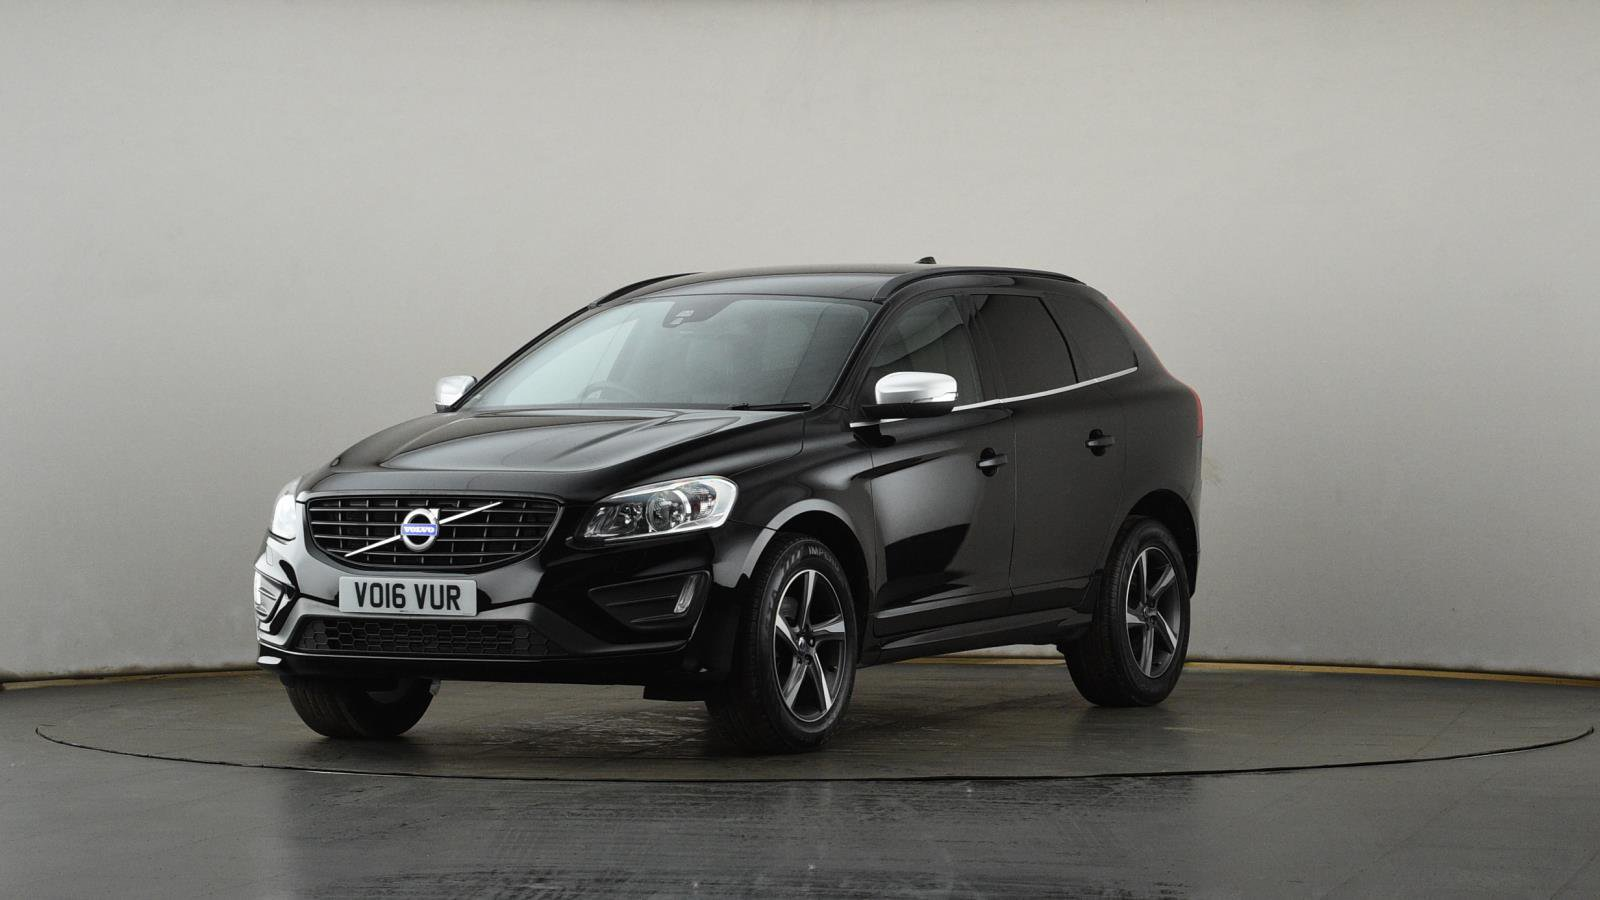 Used VOLVO XC60 D4 [190] R DESIGN Nav 5dr AWD Geartronic